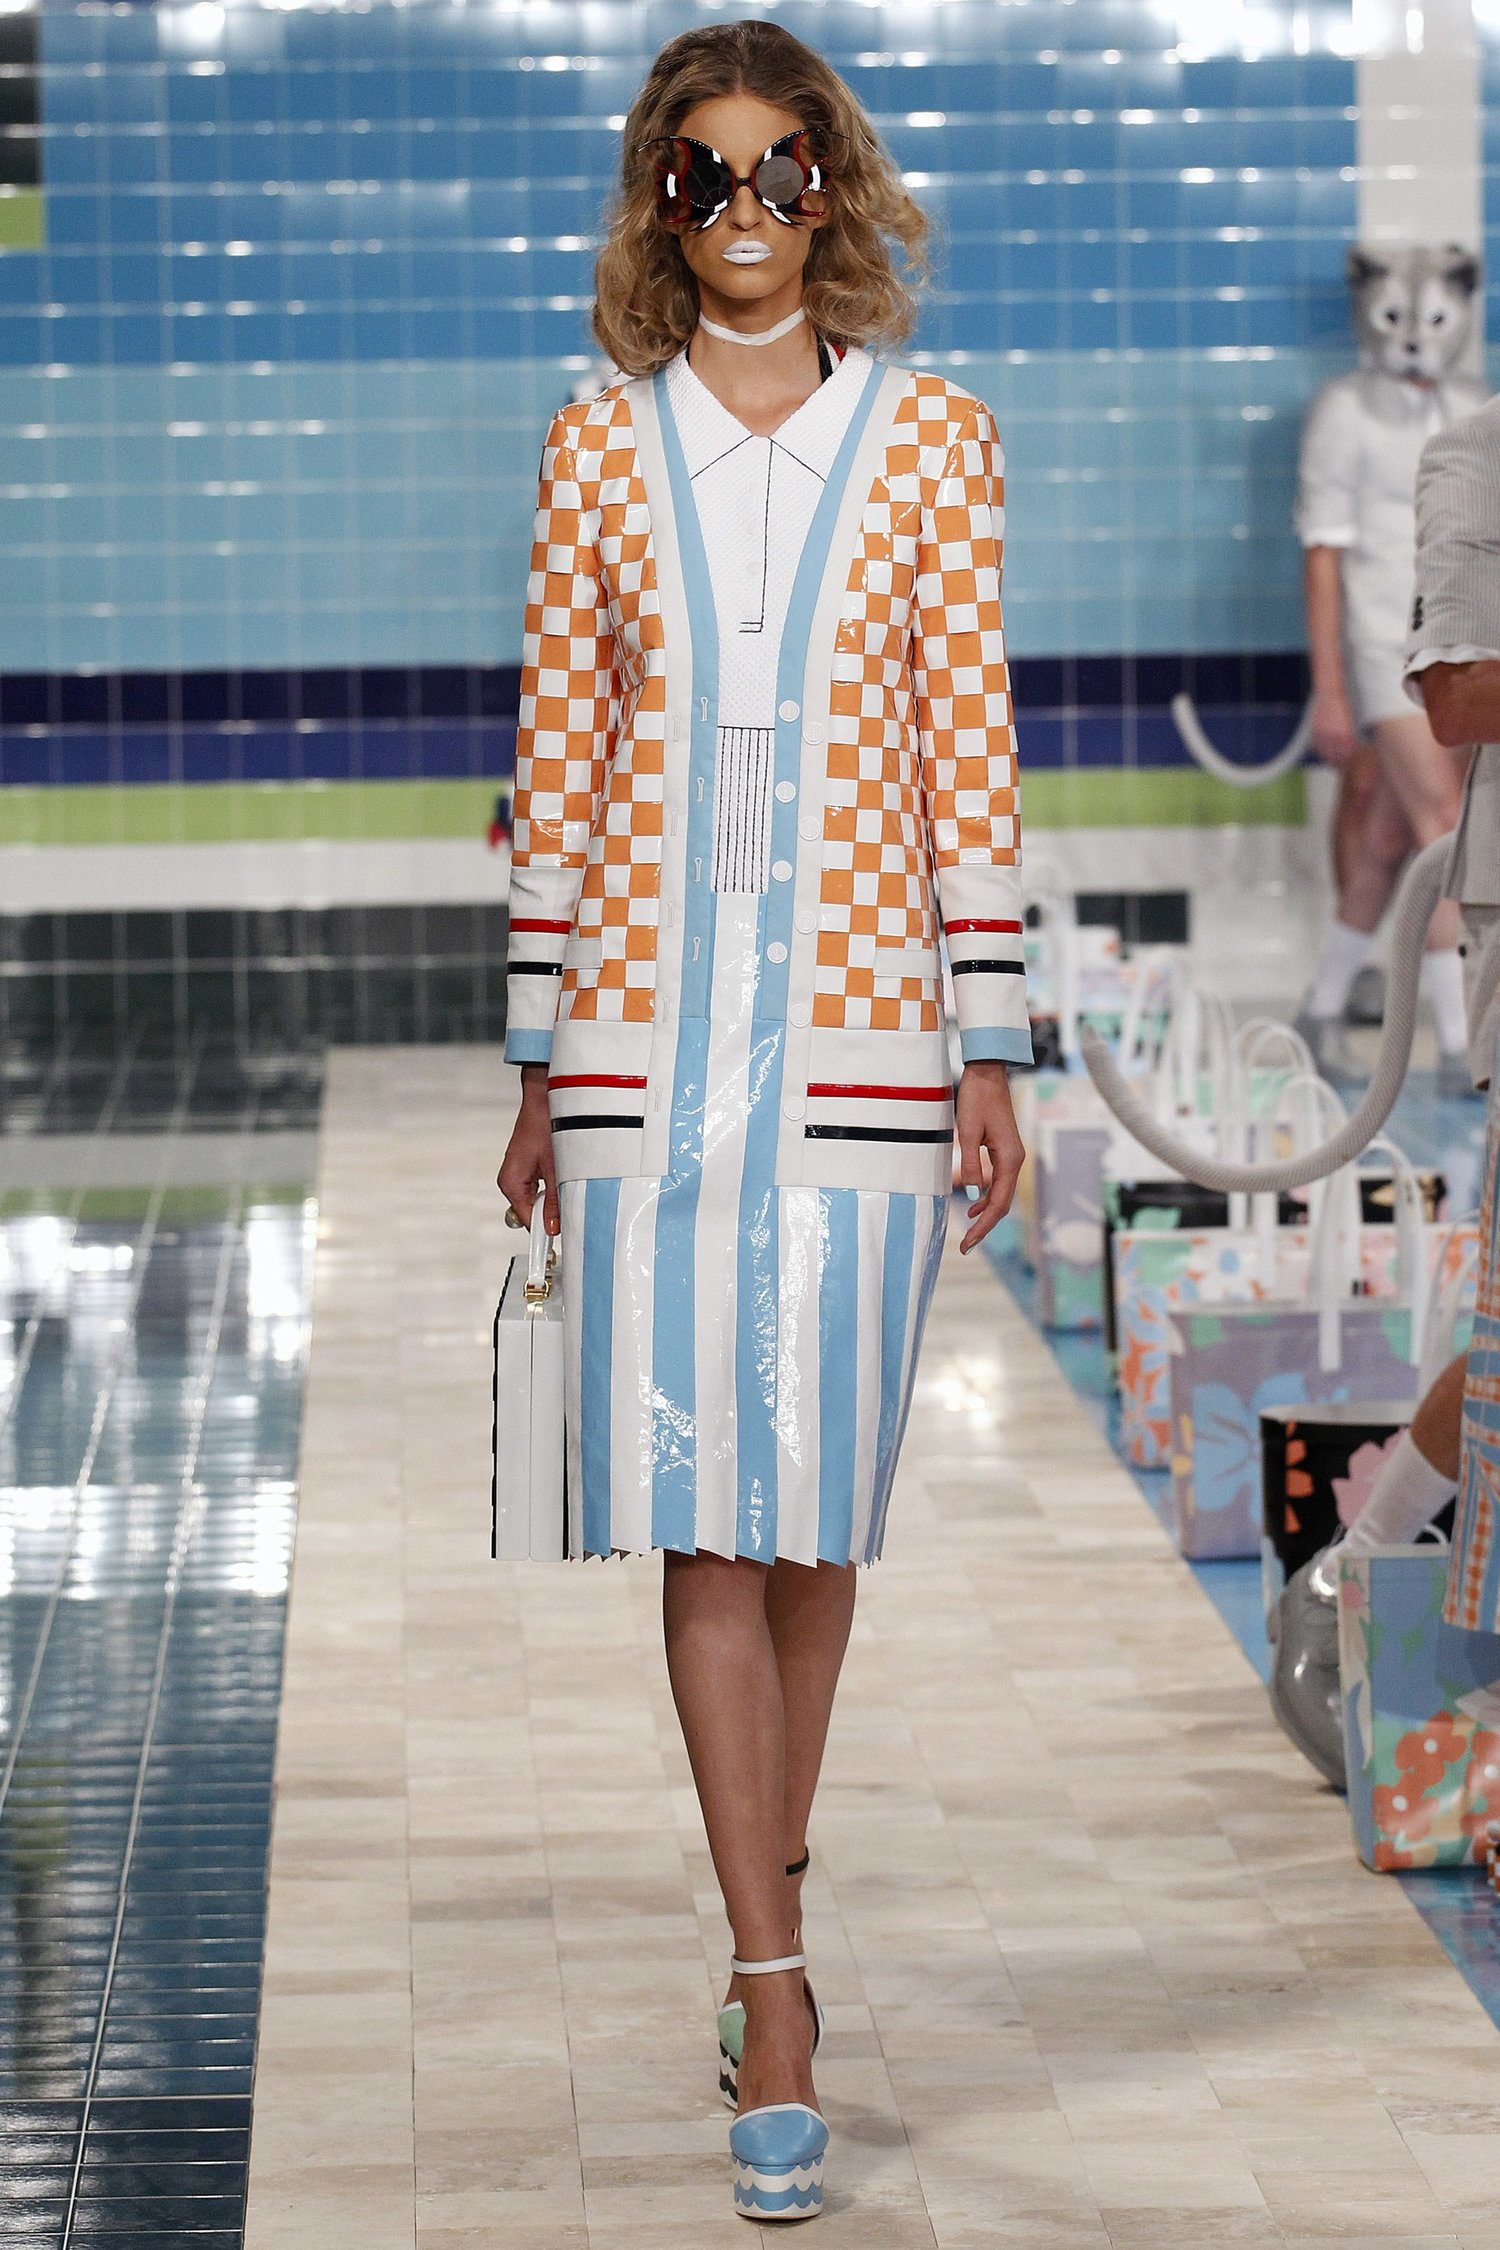 7e6d5f937 Thom Browne strikes me as being to fashion what Phil Spector was to pop  music. Like Spector, Browne uses imagination, ingenuity, and  experimentation to ...